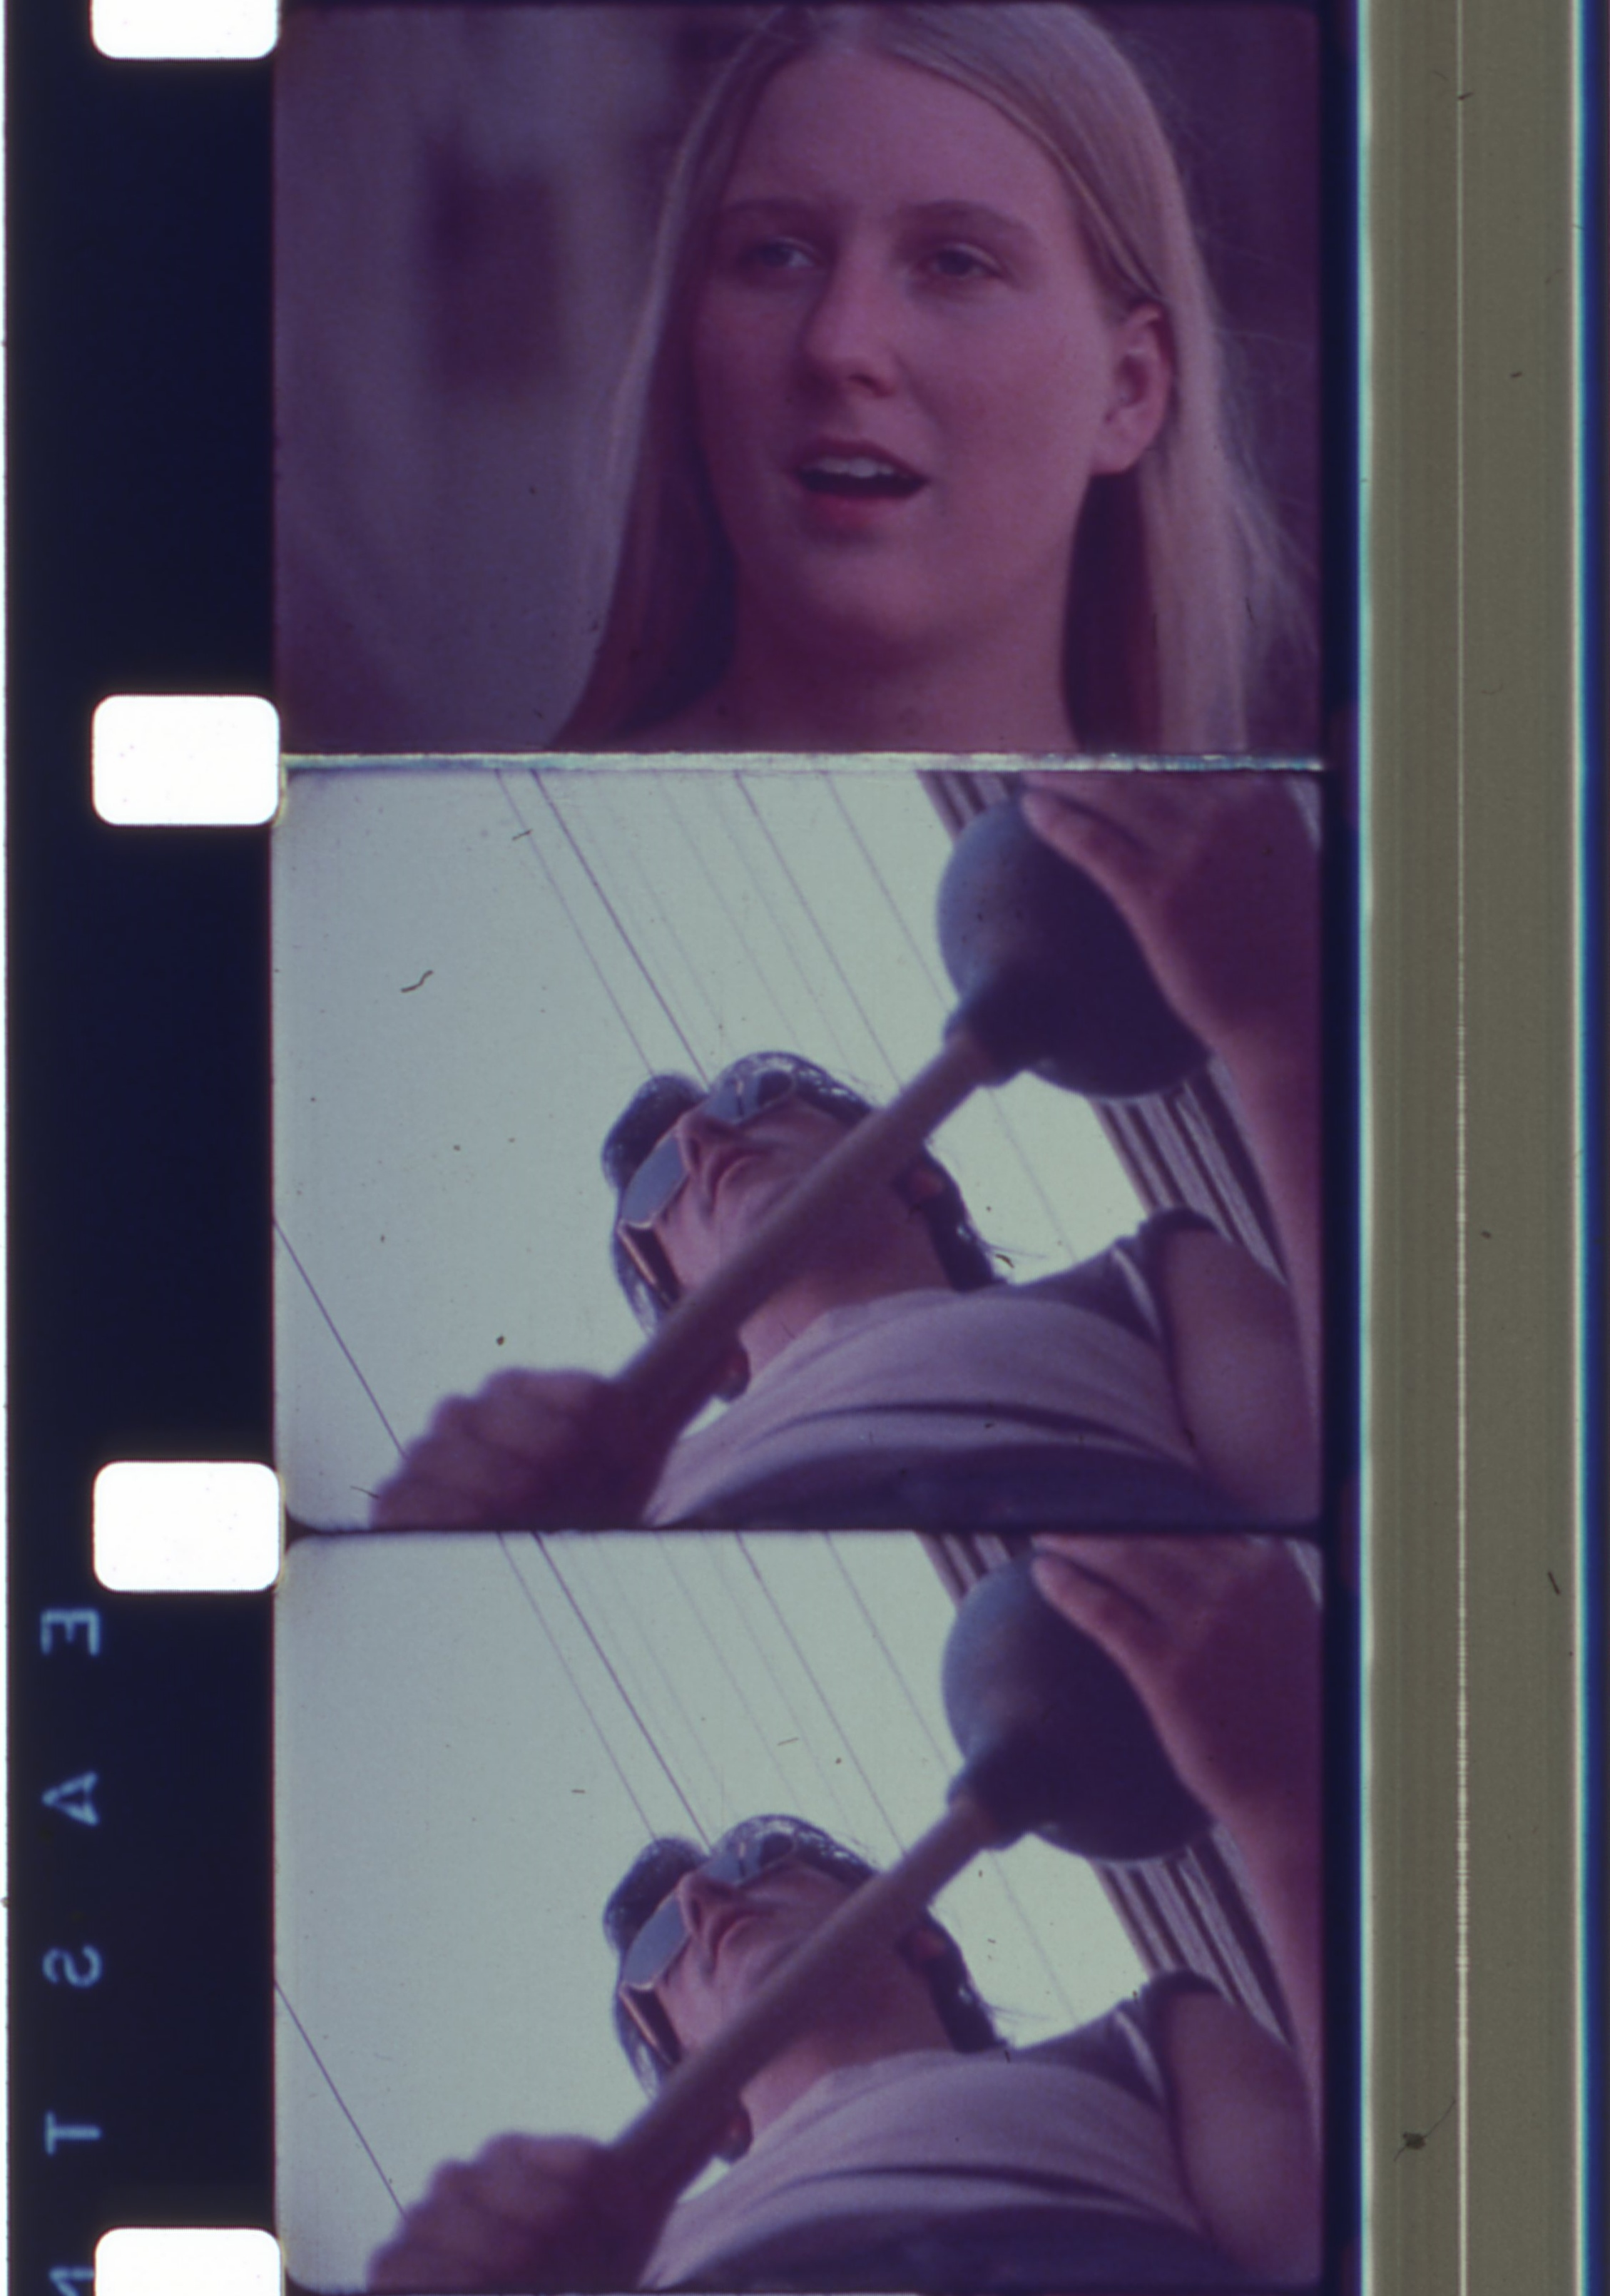 16mm film strip still,  The Case of the Kitchen Killer  (1976), Tim Smith Moving Image Collection. Courtesy Oregon Historical Society. Image subject to copyright laws.